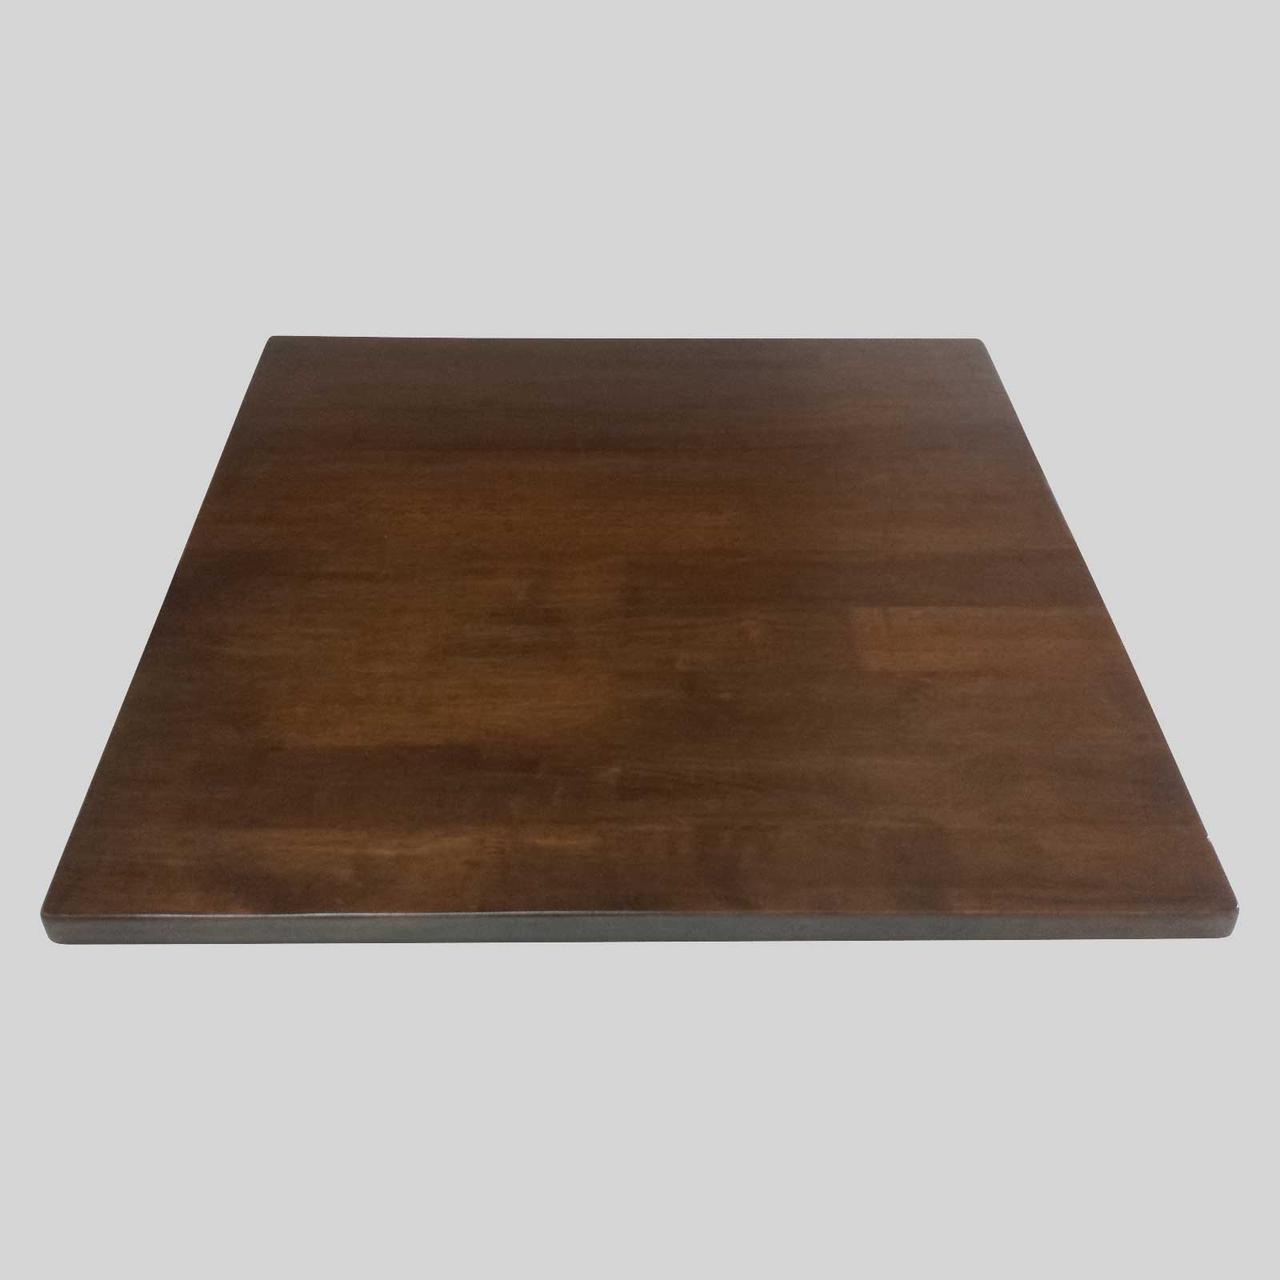 rubberwood_table_top_square_walnut.jpg